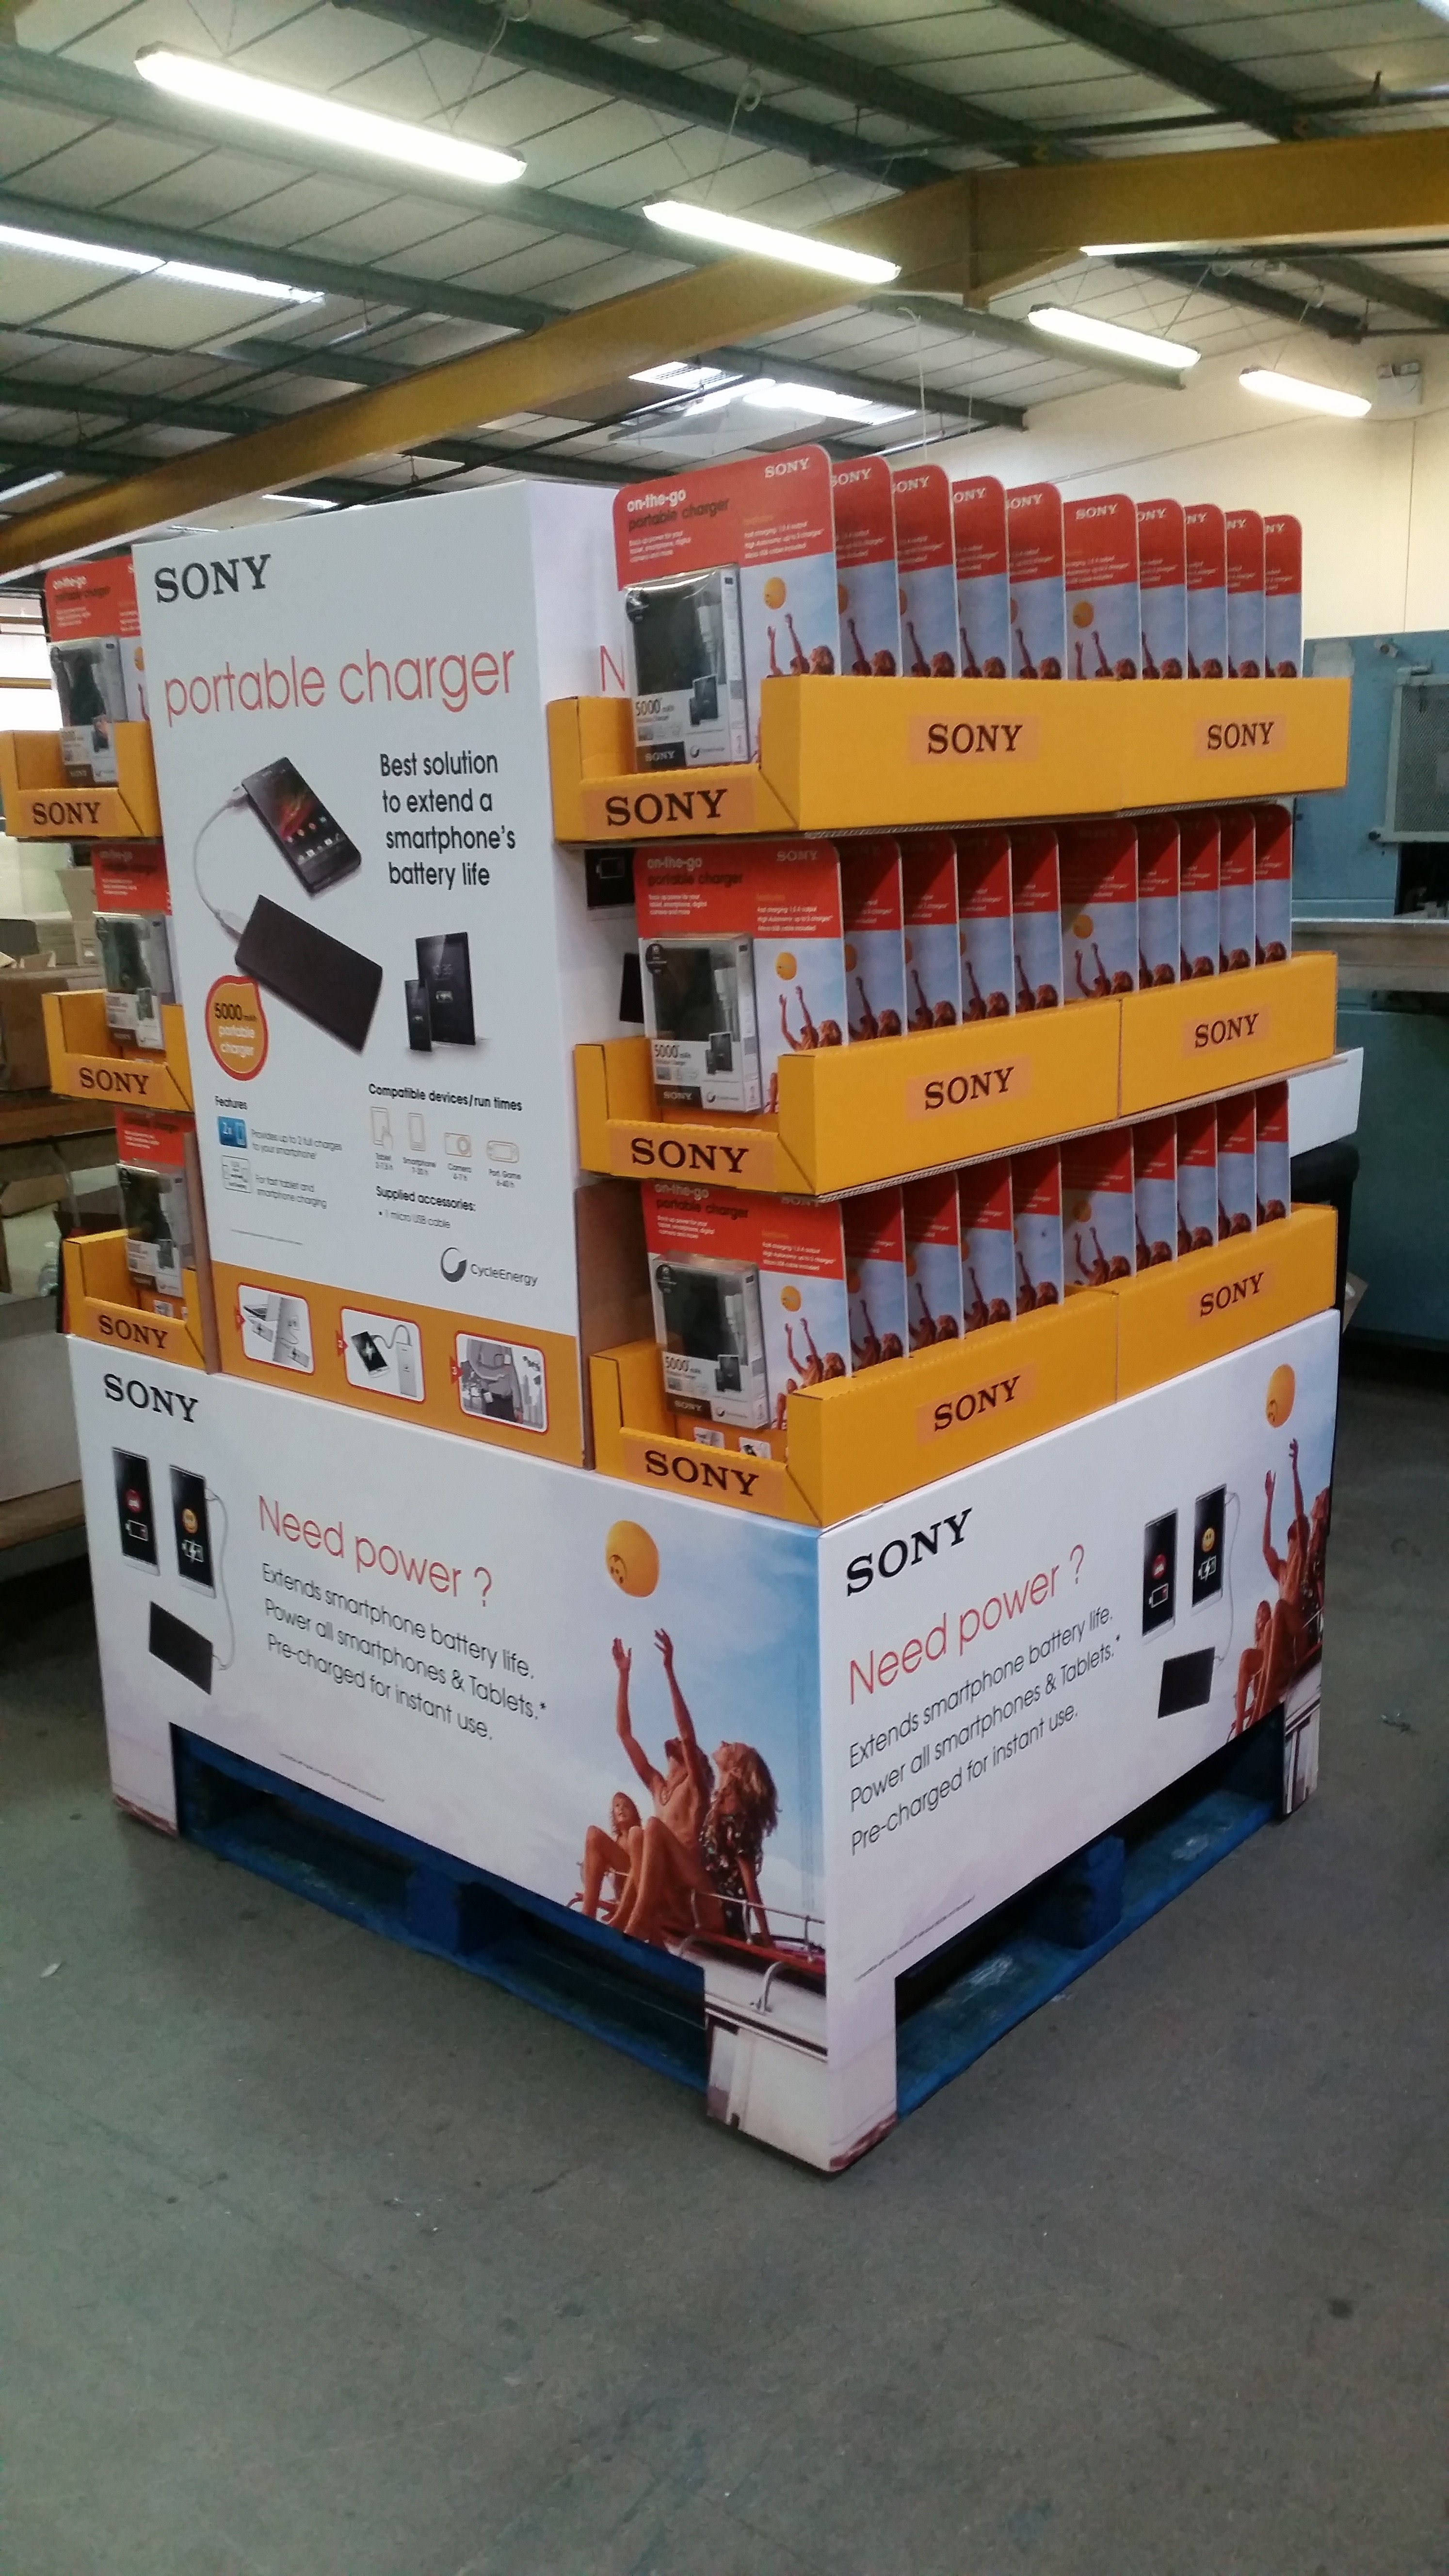 Sony 5000mAh Portable Charger Pallet